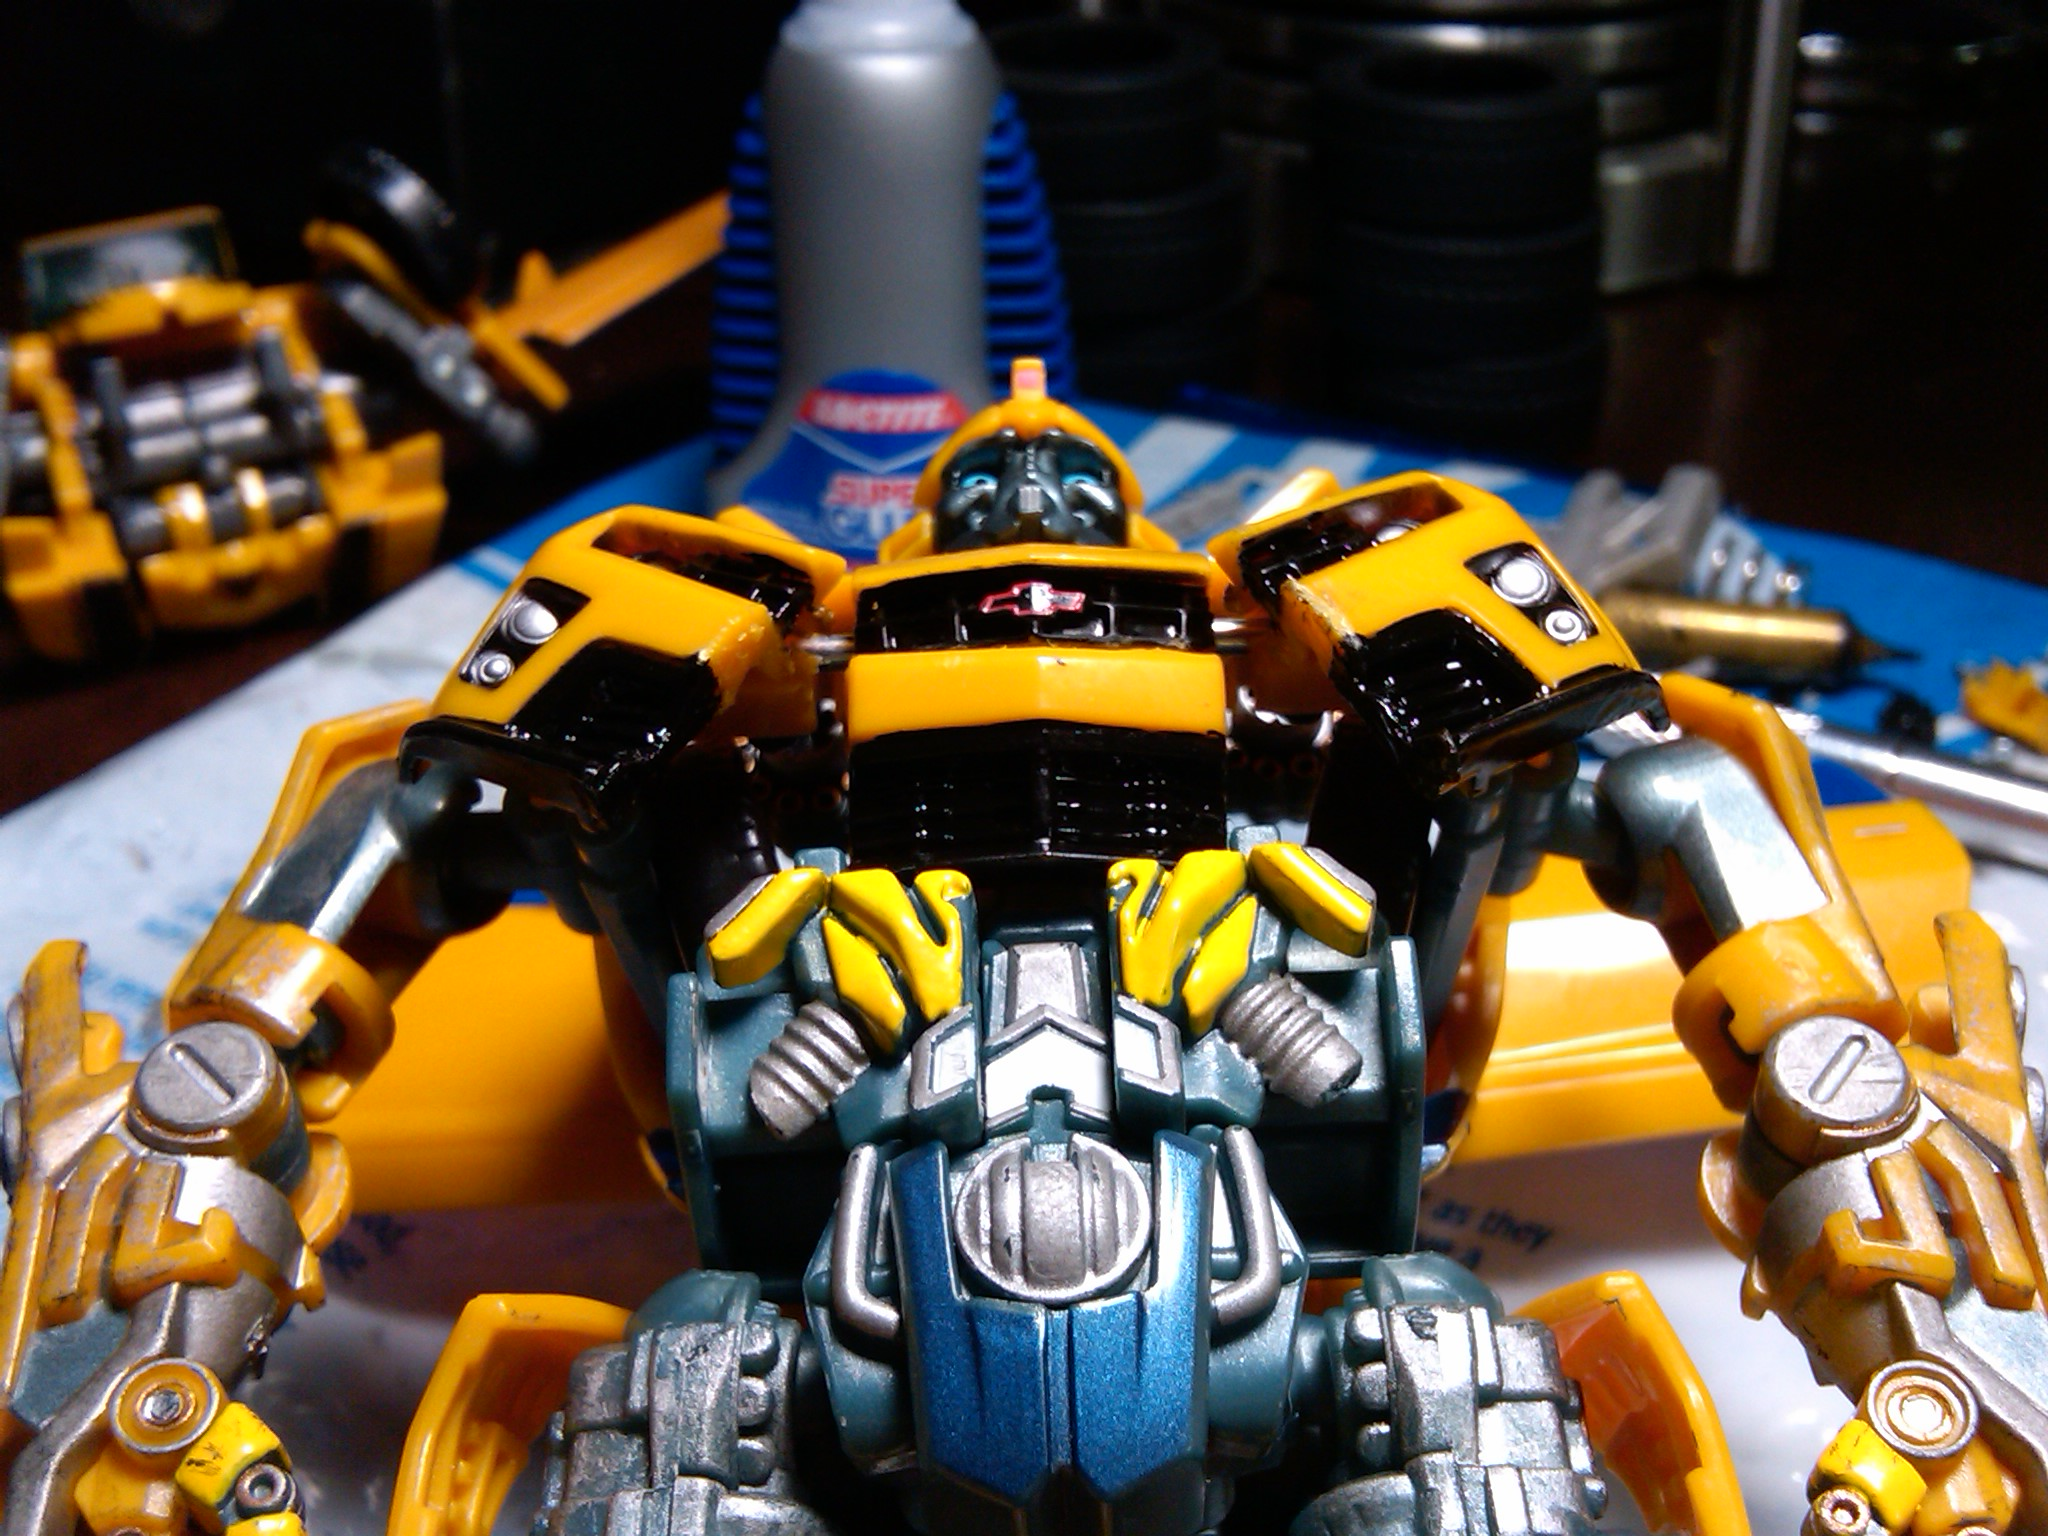 RotF Cannon Bumblebee Chest Modification-img00017-20091001-1714.jpg